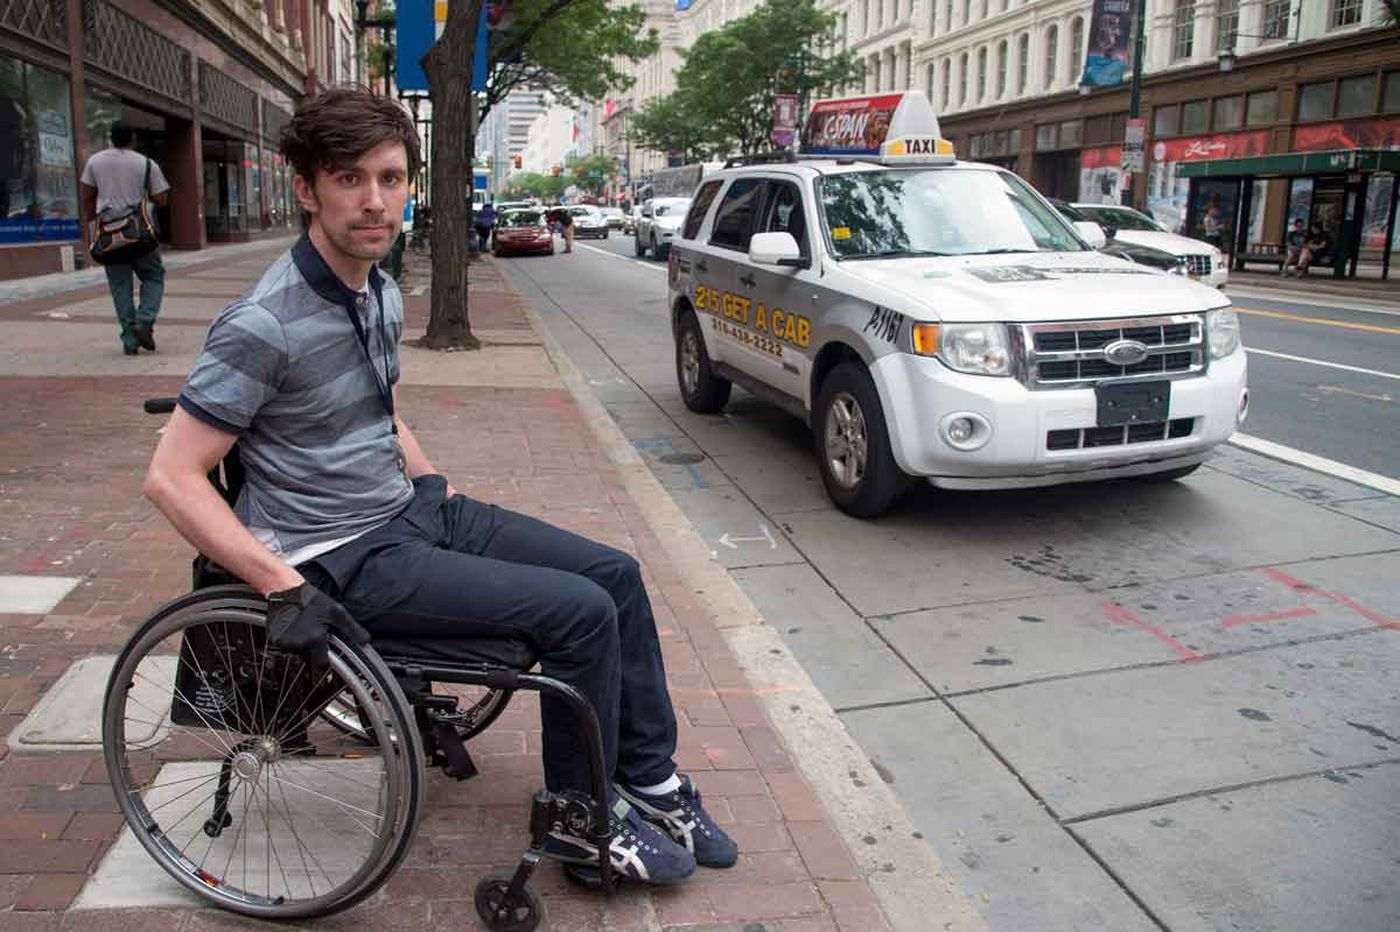 Ride sharing a hit in Philly, but city's disabled are still left behind